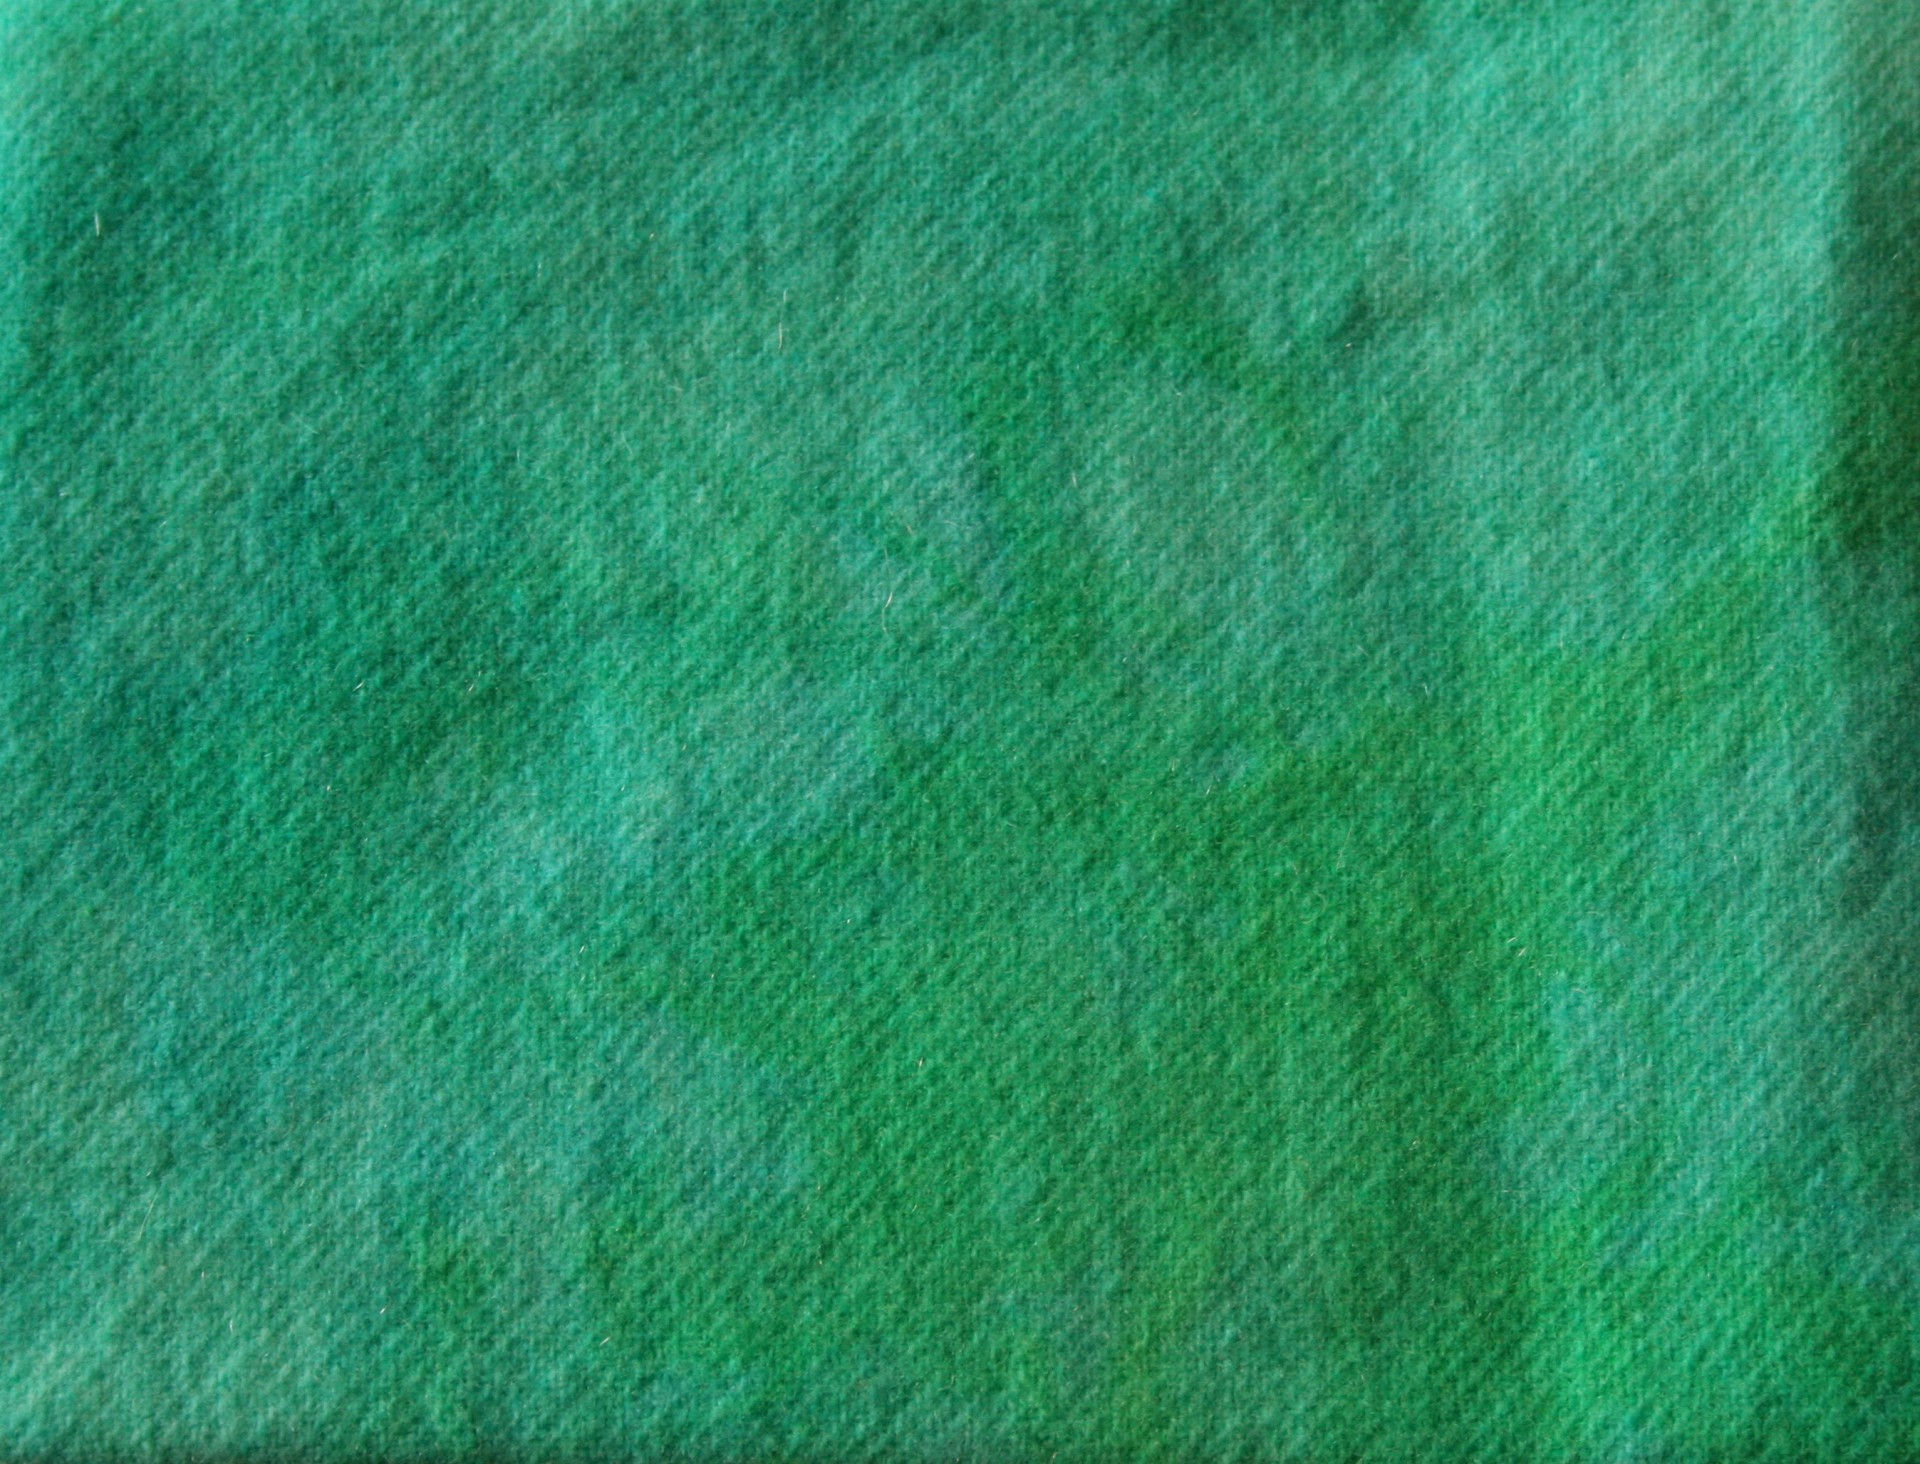 Spearmint Artisan Hand Dyed 100% Wool Part of the Seaside Collection